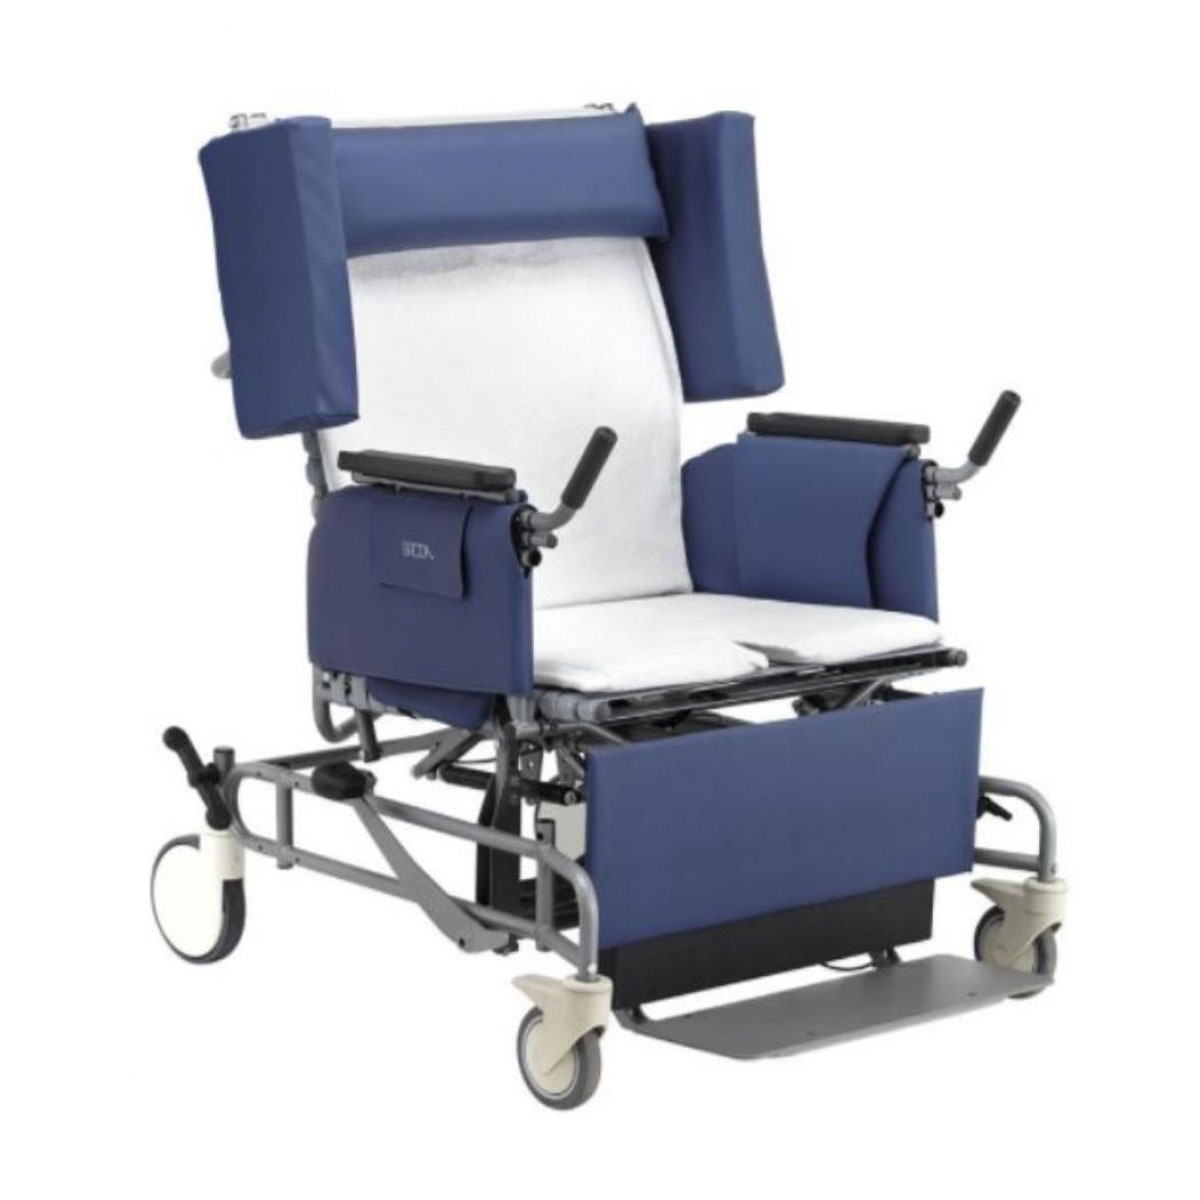 Broda elite vanguard bariatric tilt recliner chair, model 985